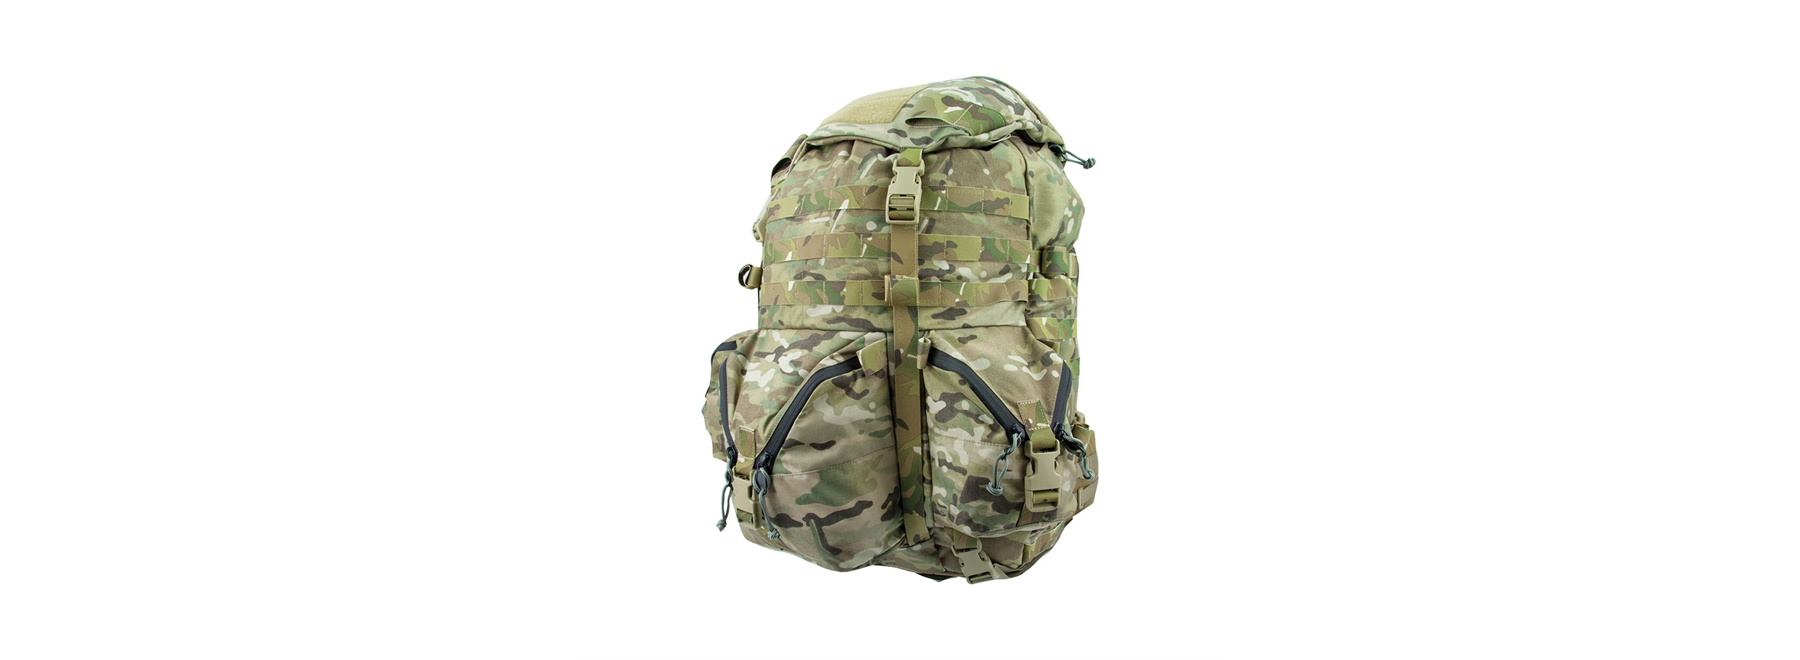 NICE Mountain Ruck BVS